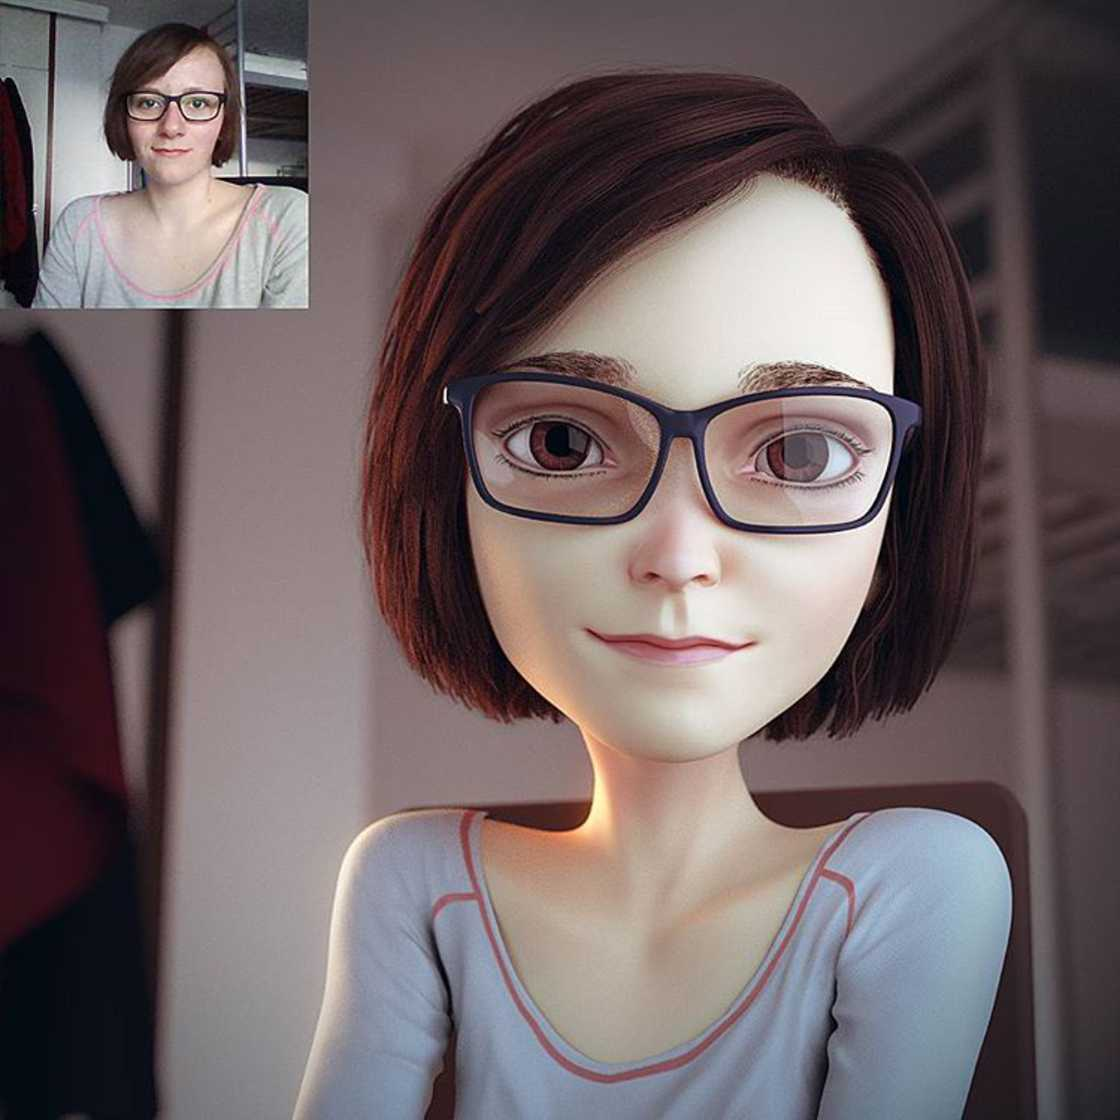 Il transforme les photos de profil en superbes portraits 3D